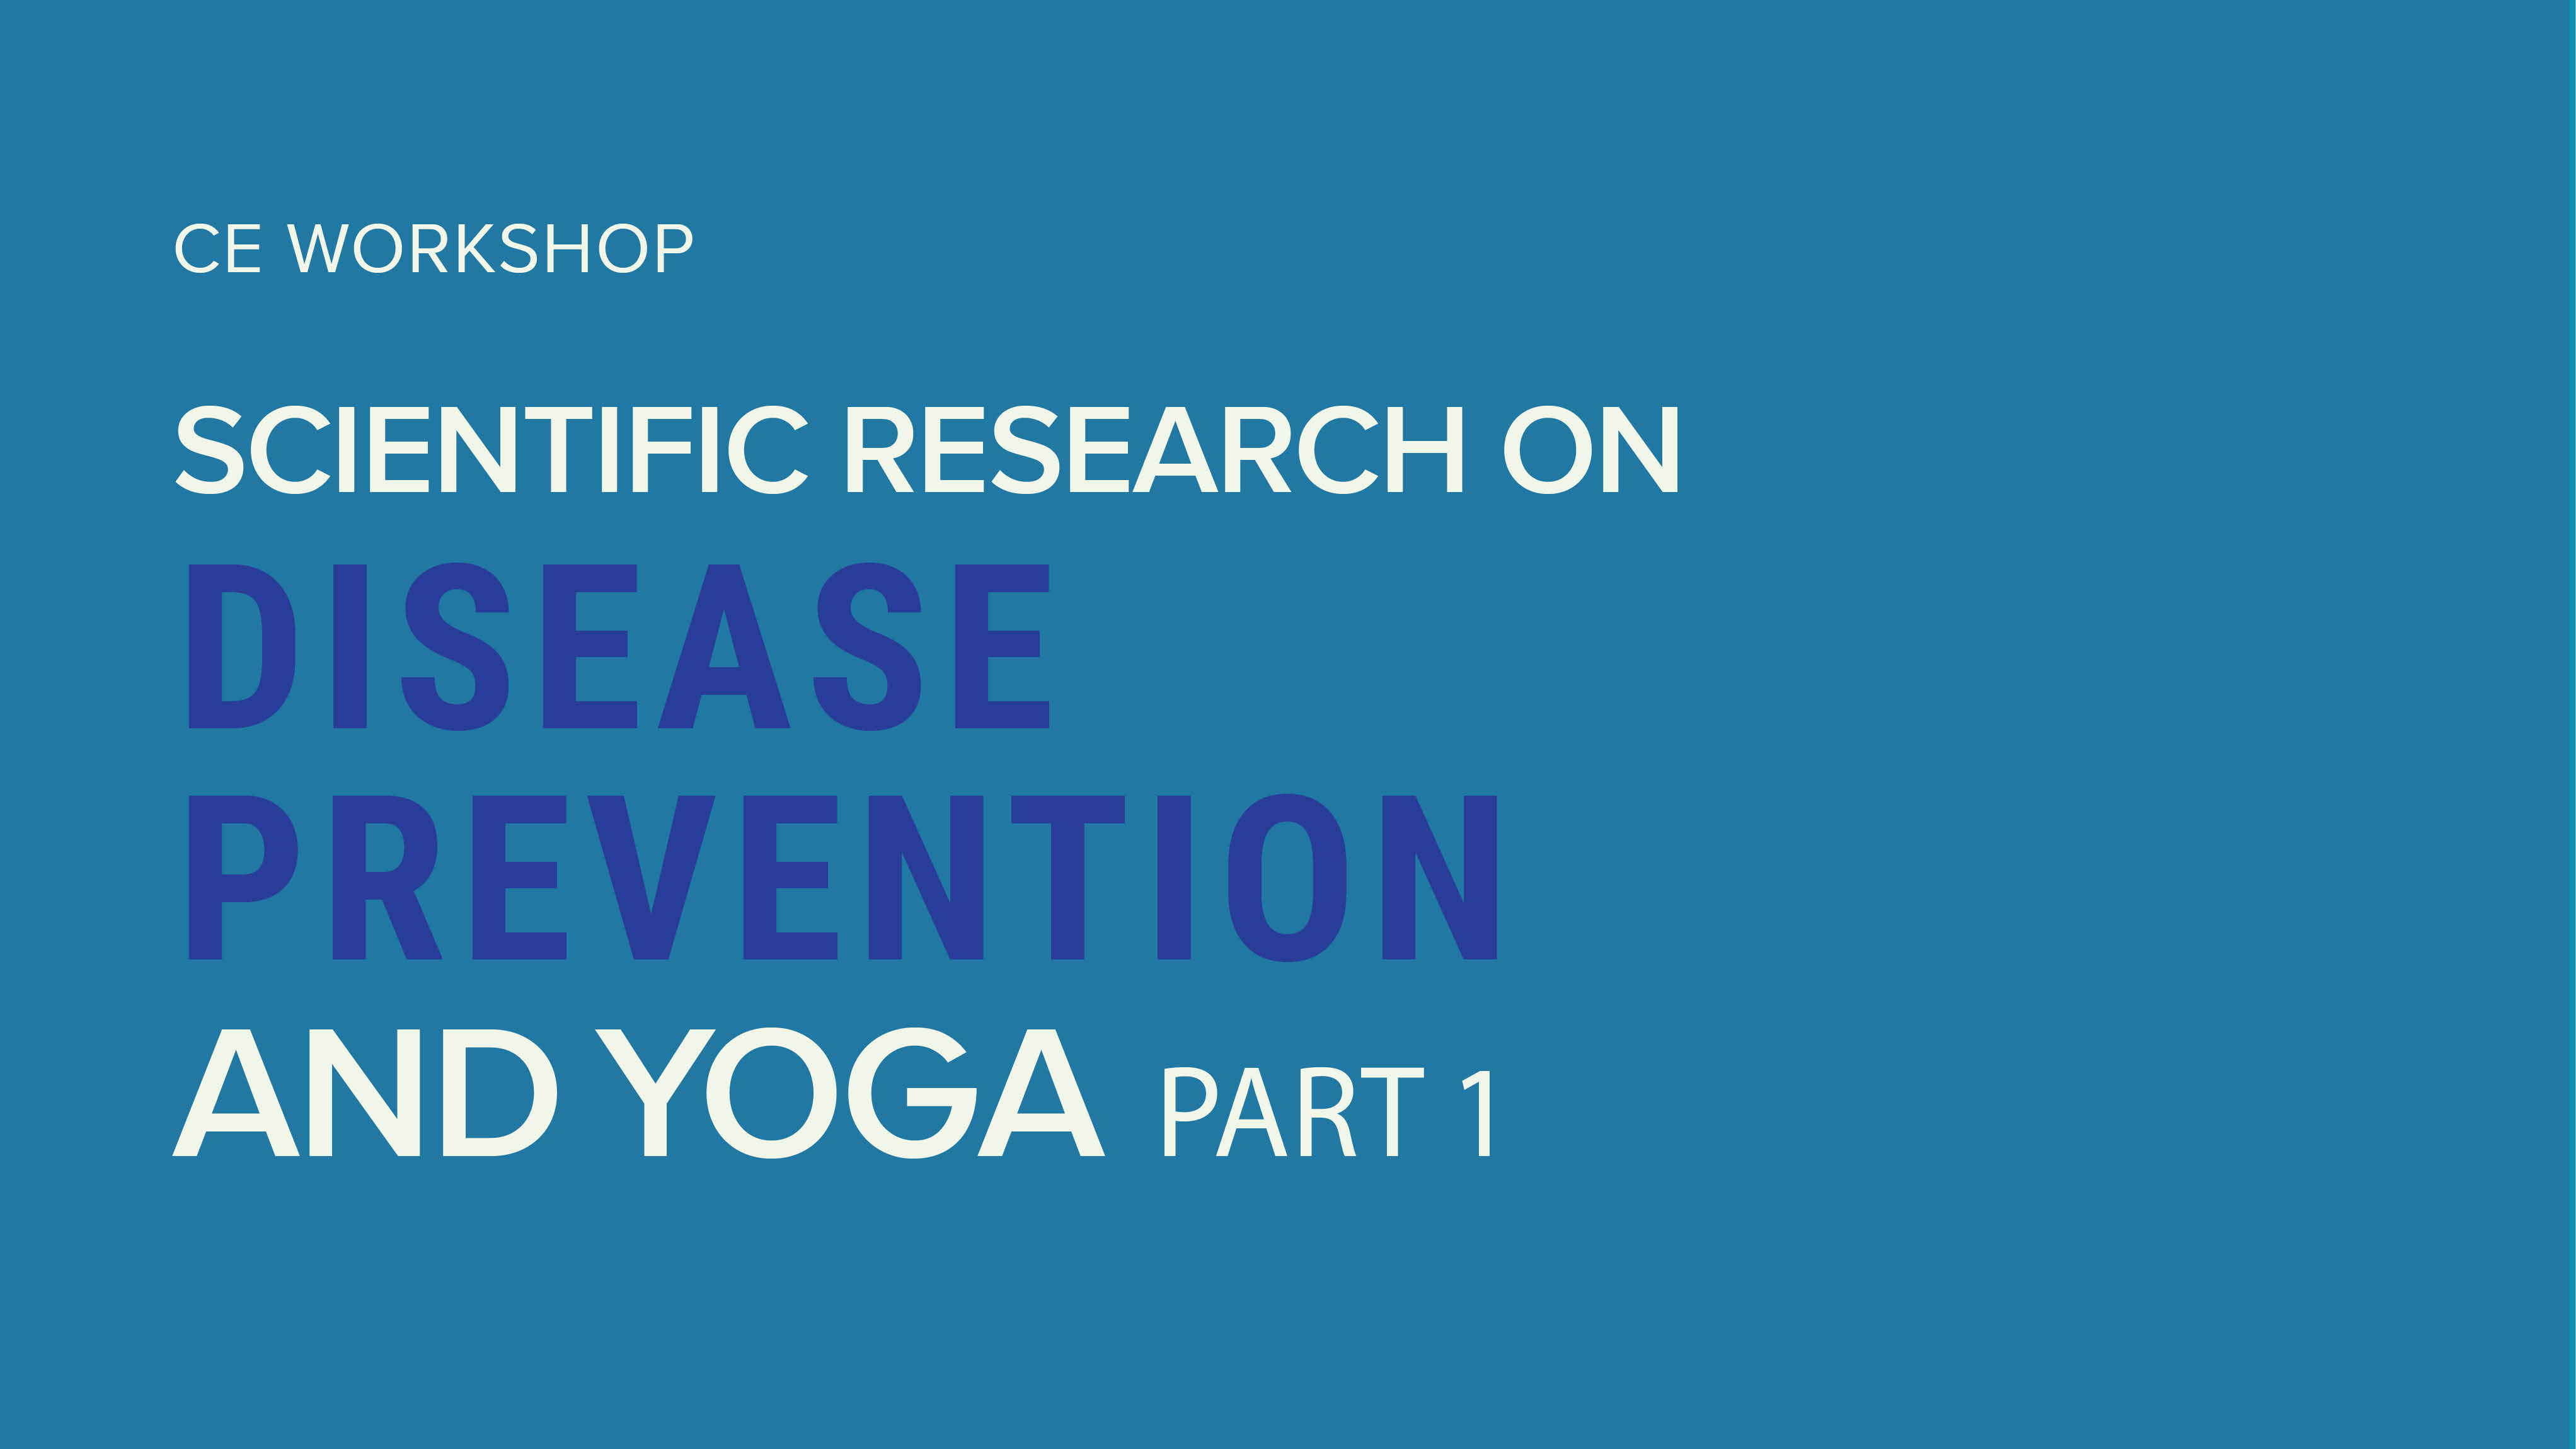 CE Workshop | Scientific Research on Disease Prevention and Yoga, Part 1